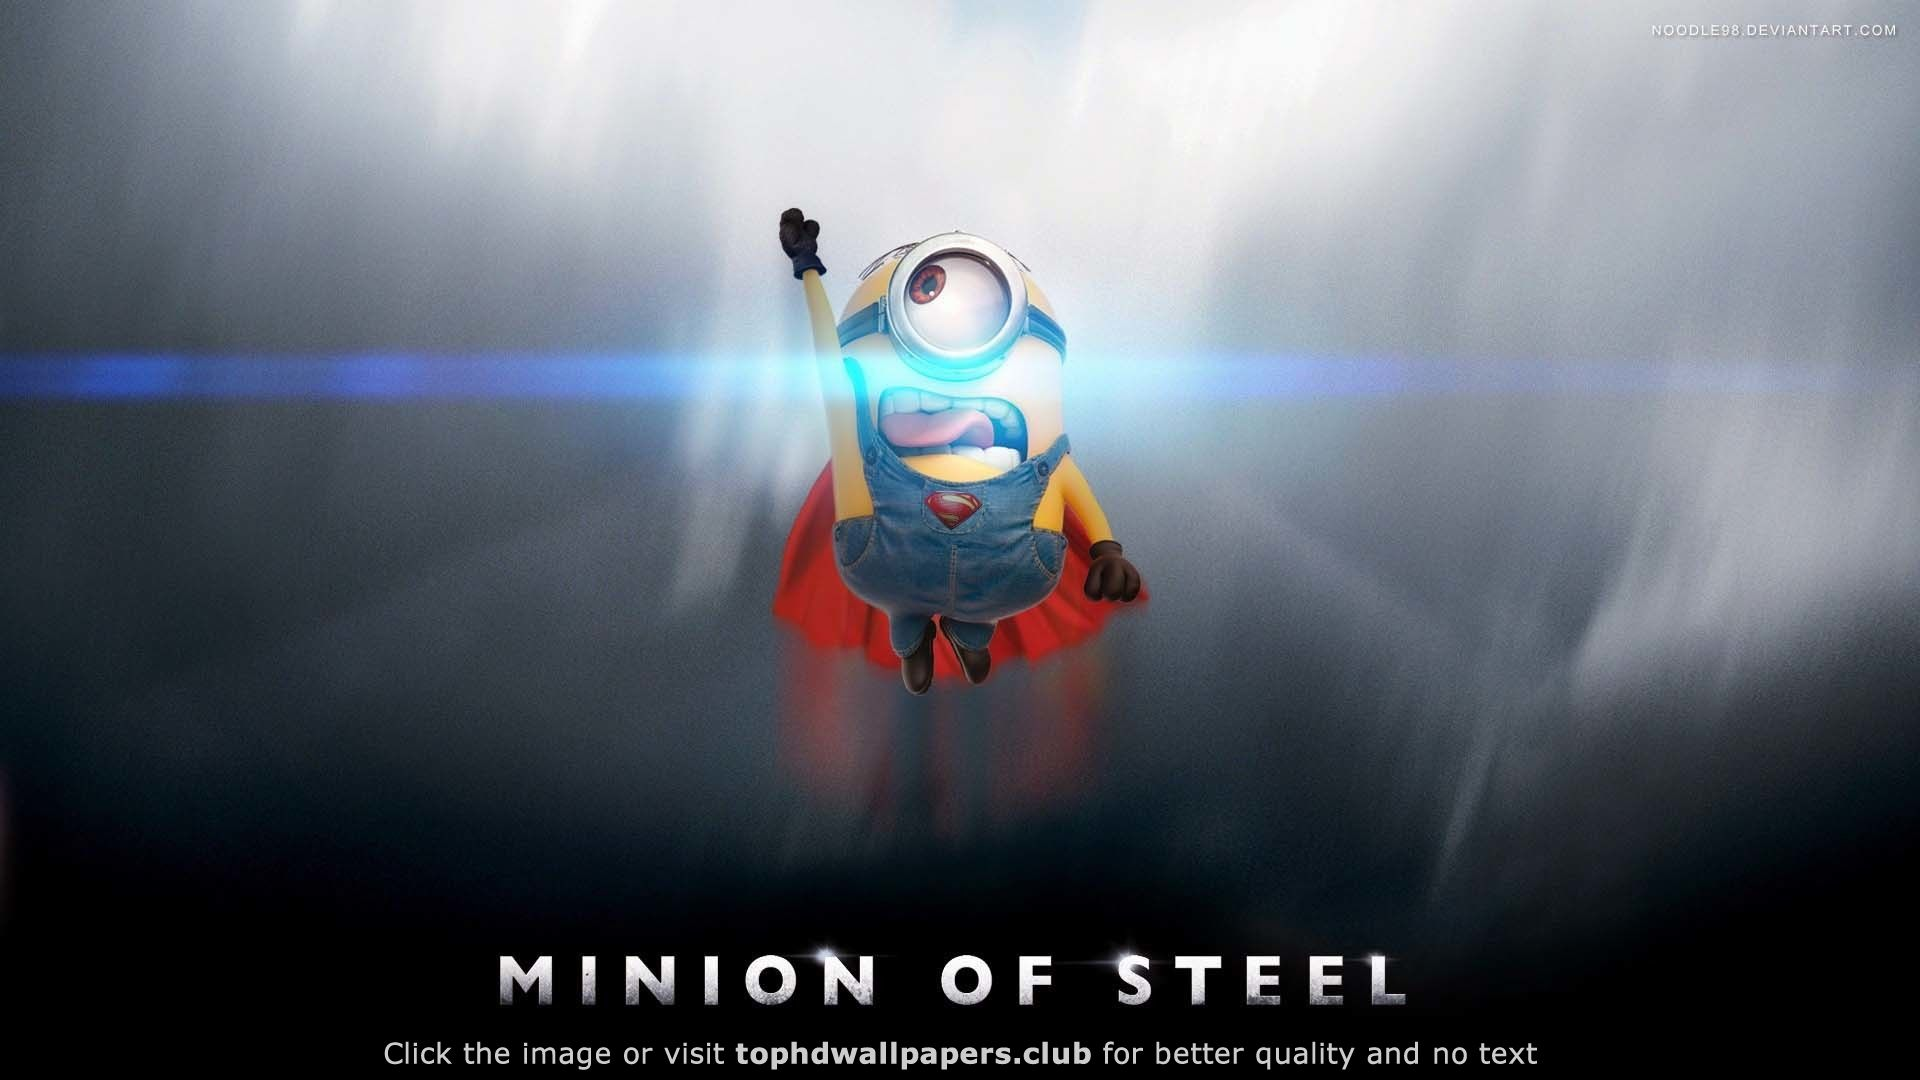 Flying Funny Flare Man Of Steel Minion   Wallpaper ( / Wallbase.cc On  Imgfave